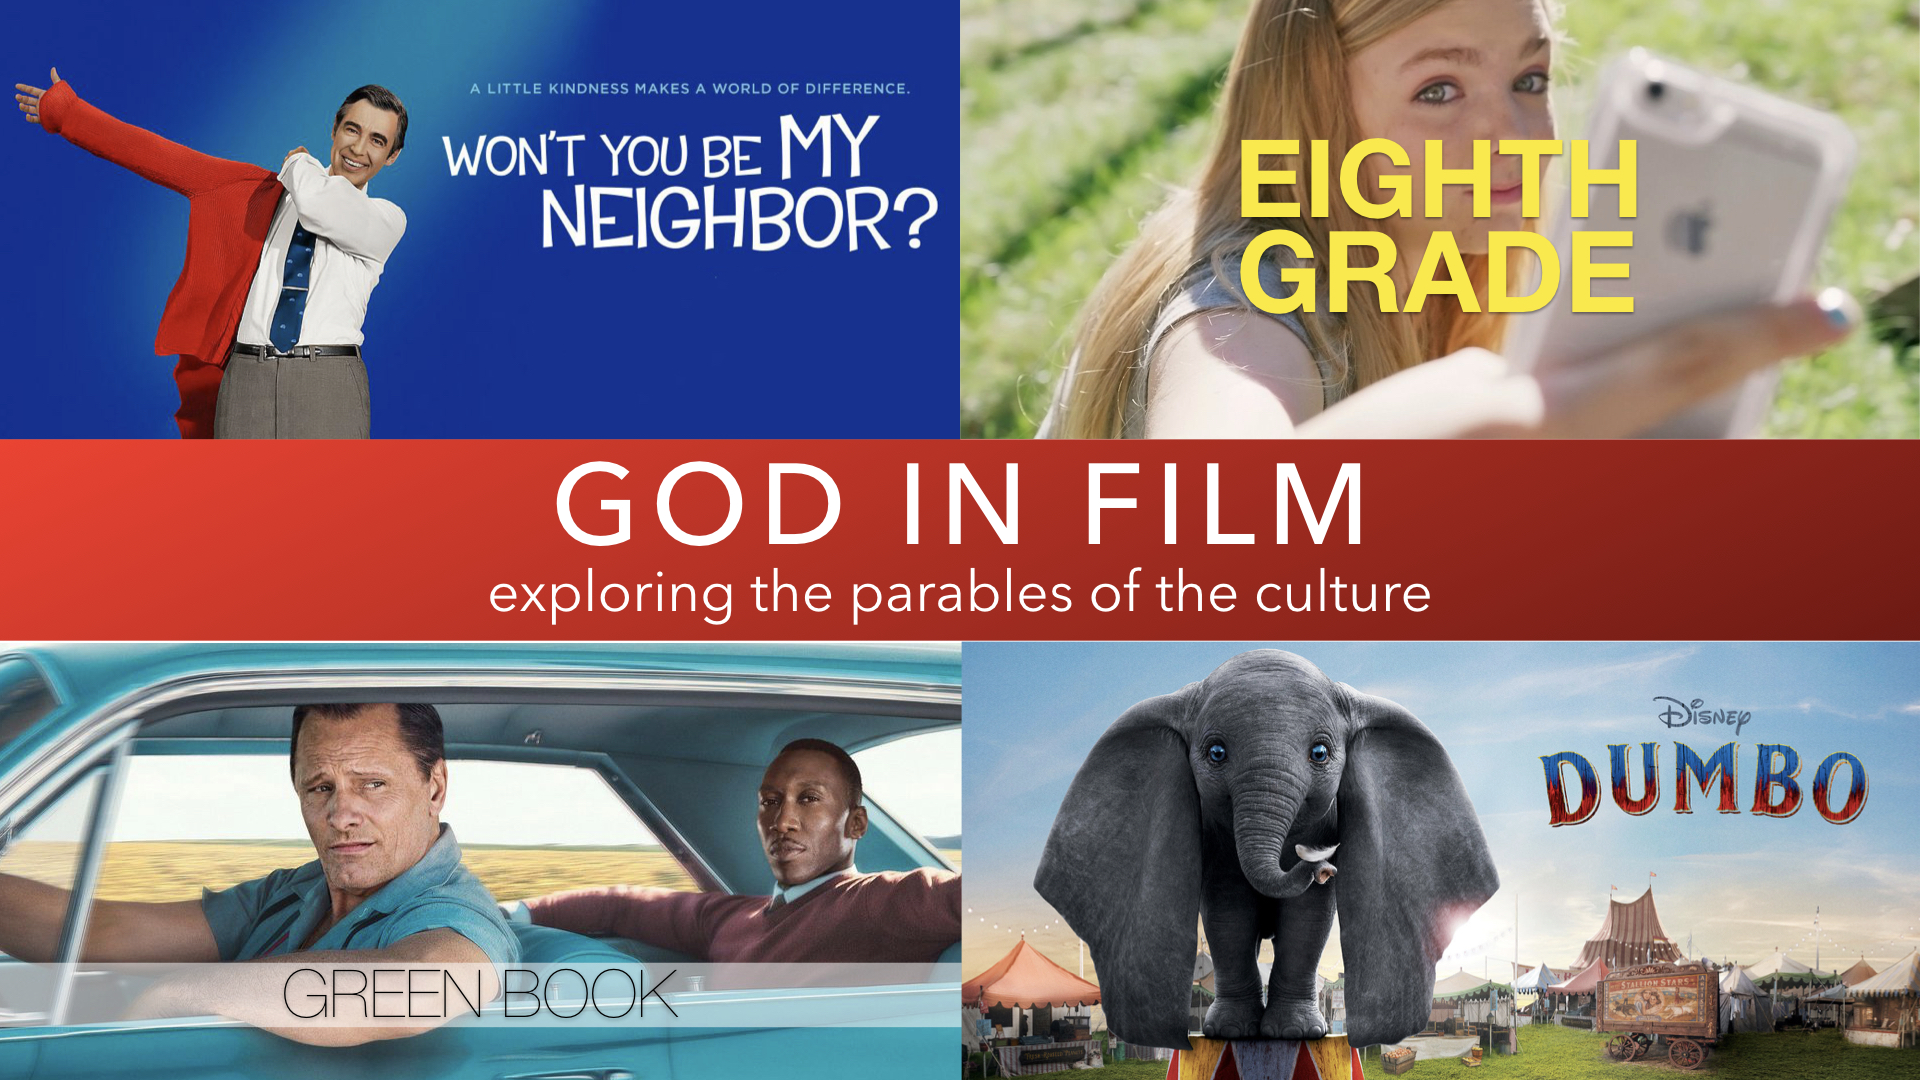 GOD IN FILM | 2019 - August 4/5: WON'T YOU BE MY NEIGHBOR? | The Transforming Power of KindnessAugust 11/12: 8TH GRADE | Do We Ever Really Get Out of Middle School?August 18/19: GREEN BOOK | Finding Connection in a Fragmented WorldAugust 25/26: DUMBO | With God, Your Weakness Can Make You Soar